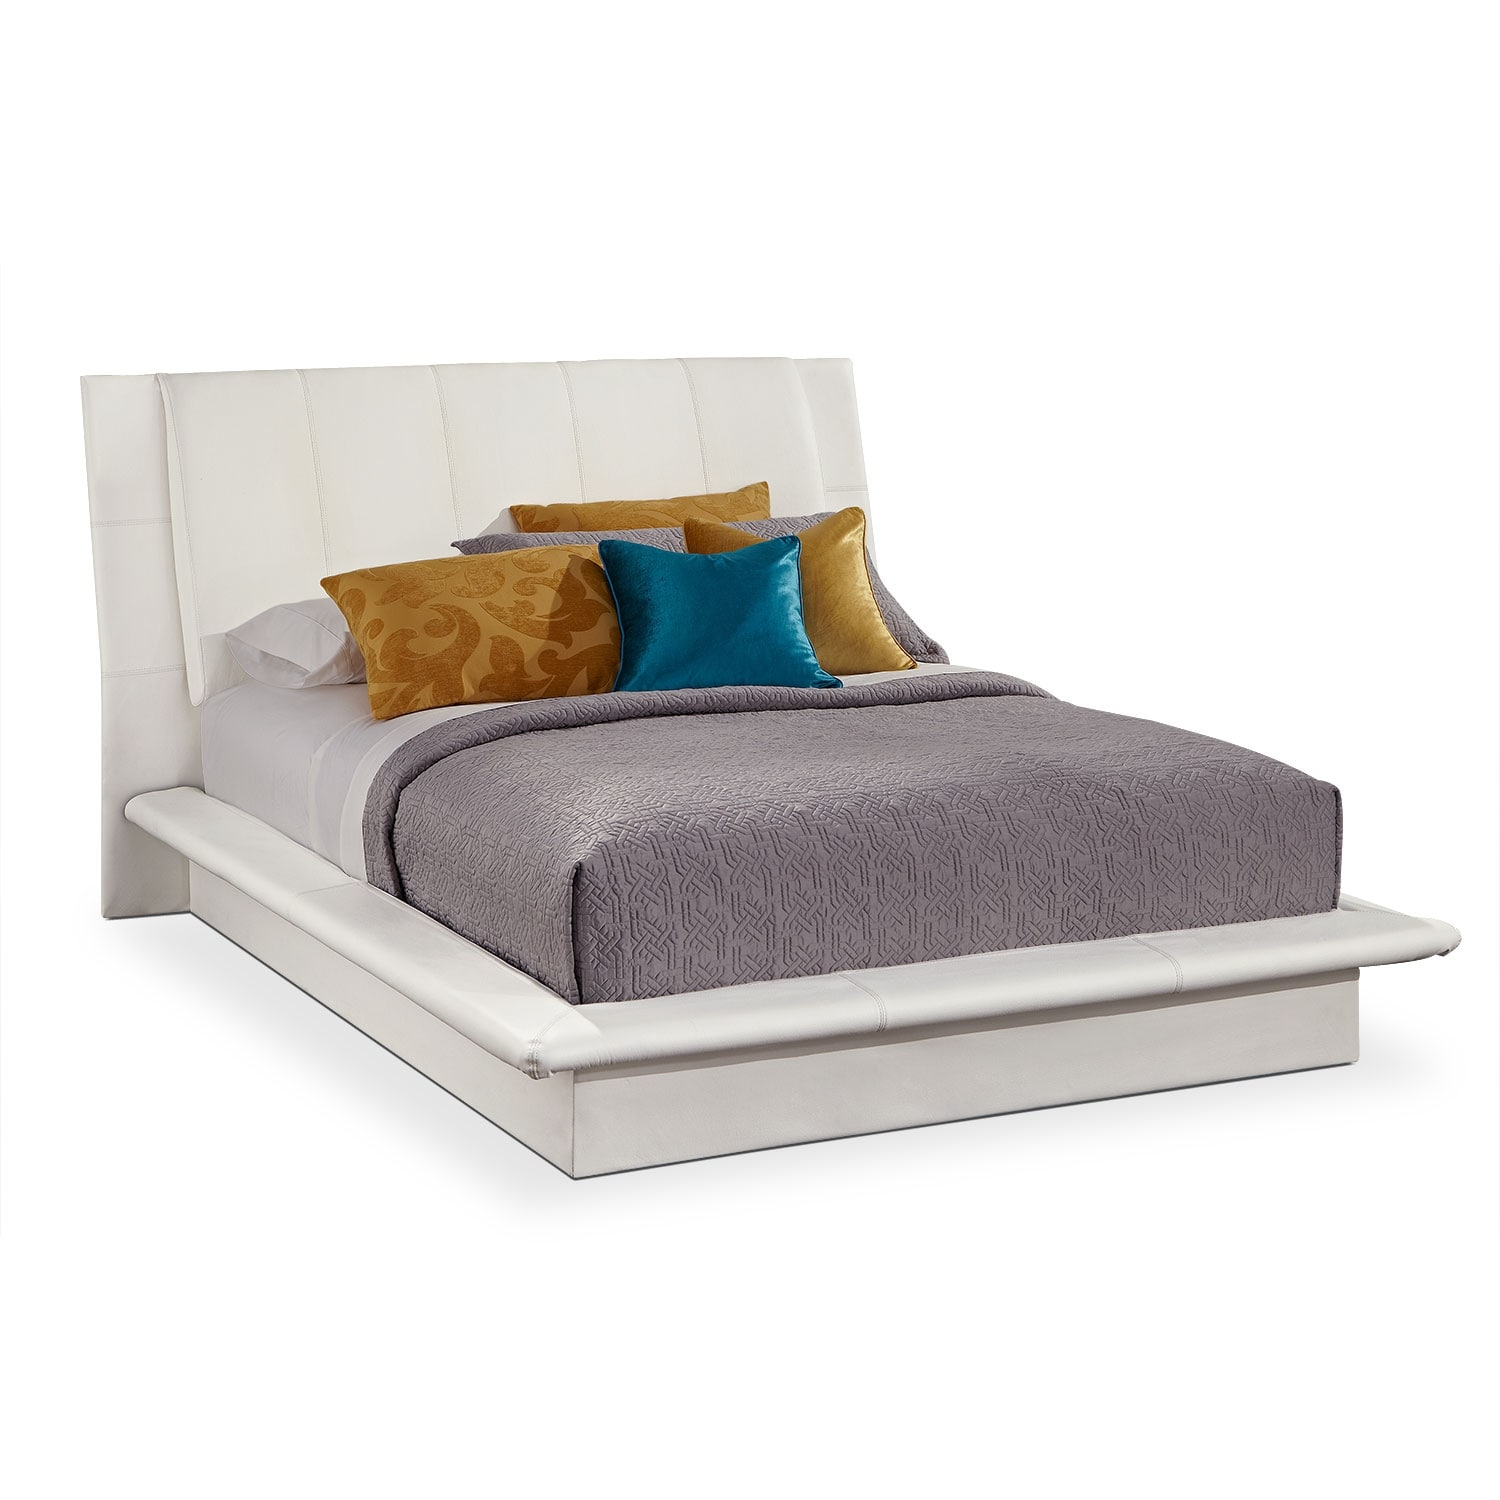 Bed Mattress Factory Outlet